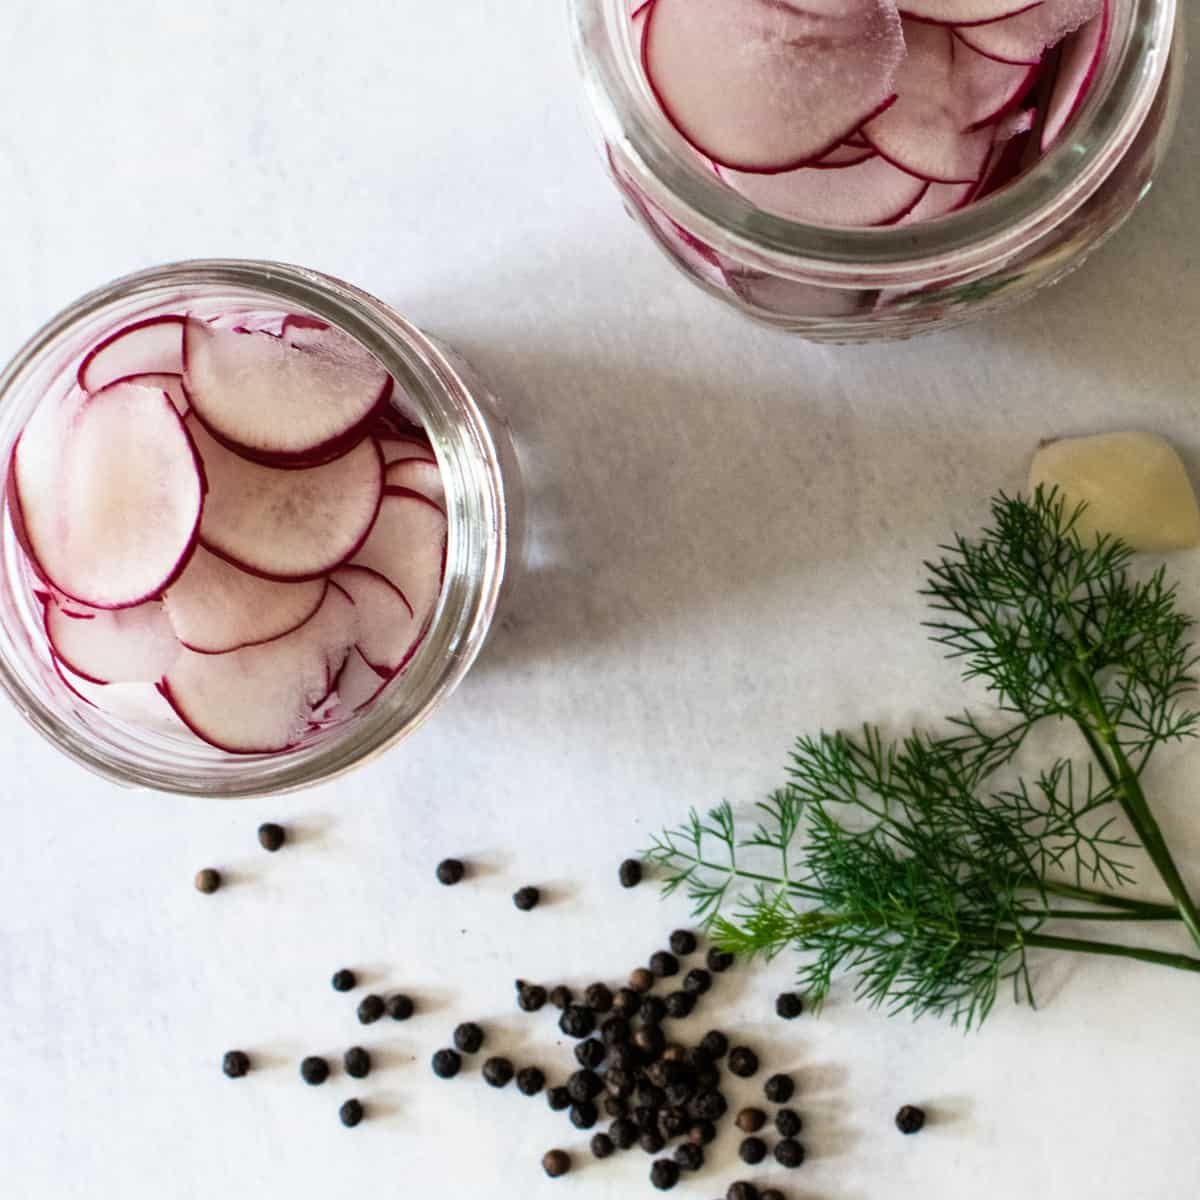 mason jars of thinly sliced radishes for pickling next to optional herbs and spices